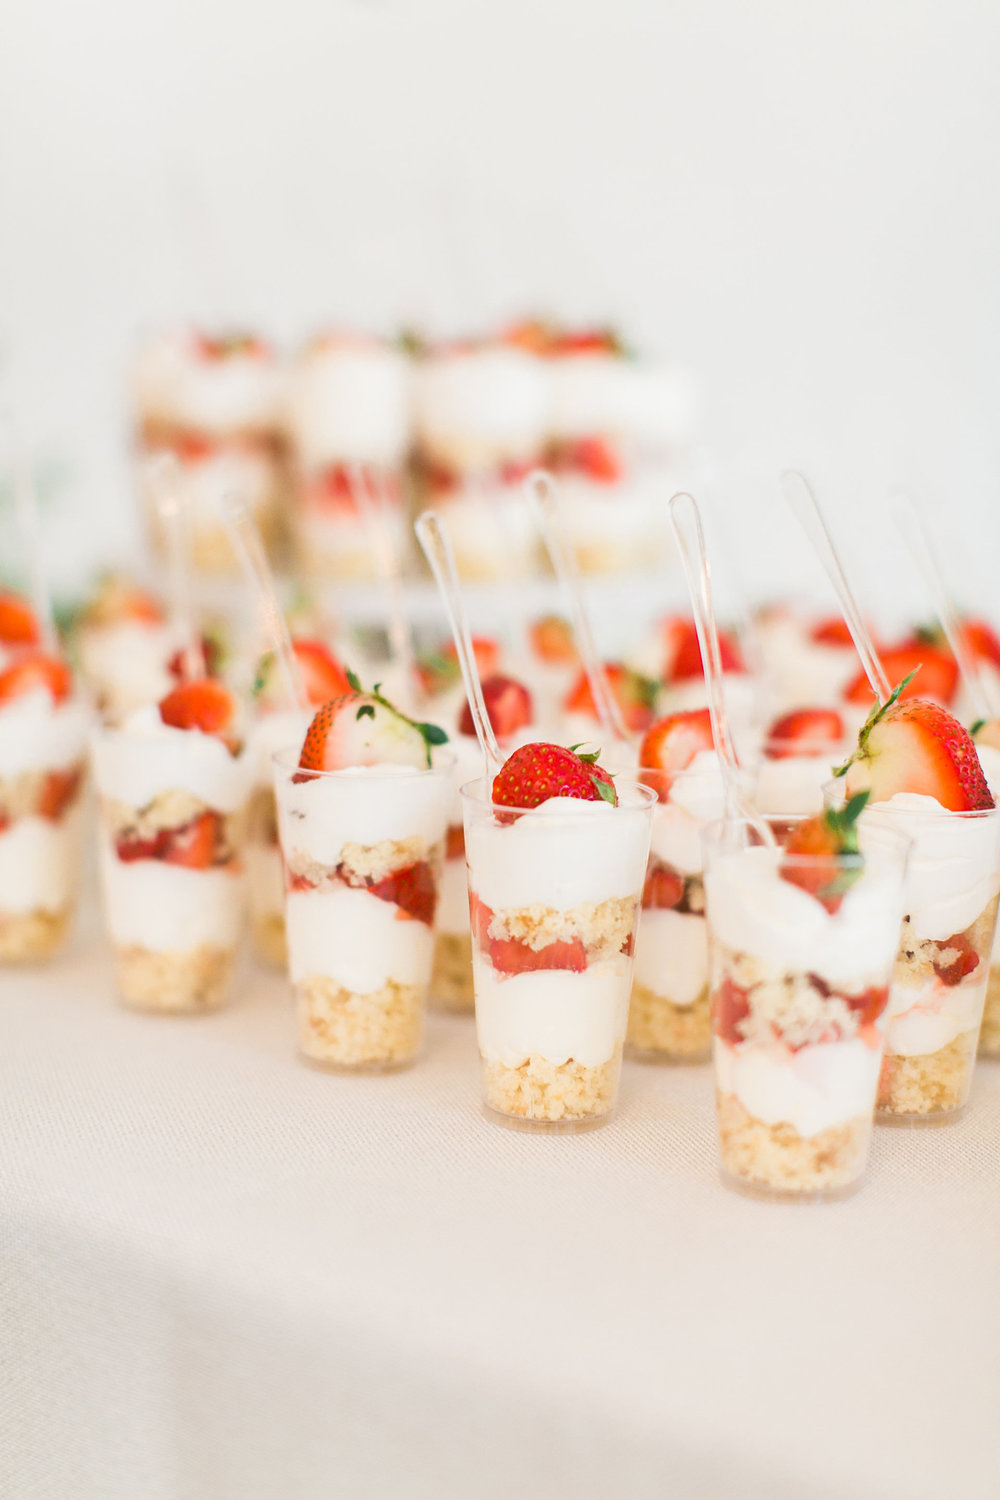 Raleigh_Dessert_Table_Sugar_Euphoria_SummerBash234.jpg